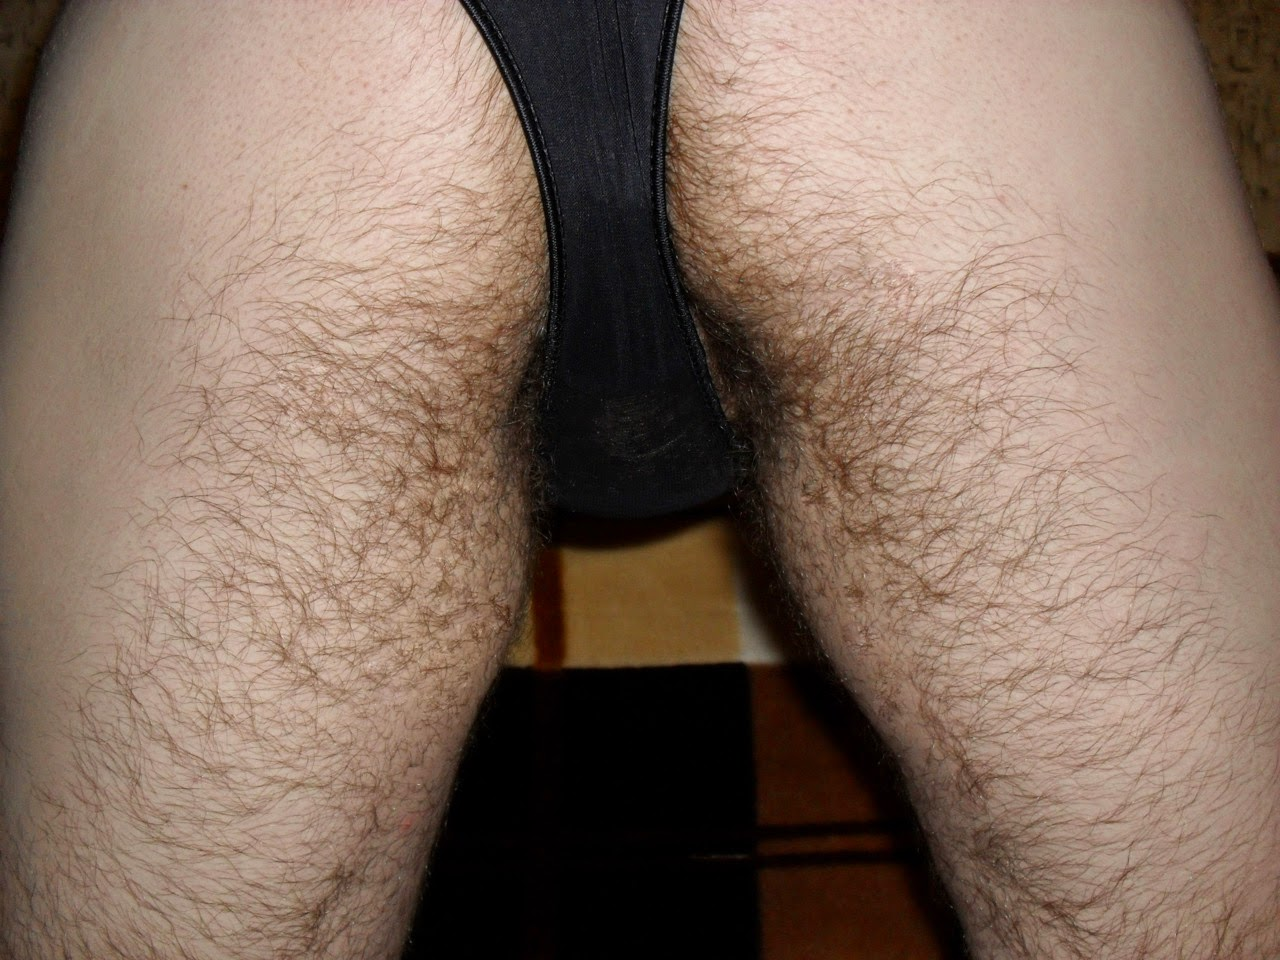 Hairy ass and furry thighs